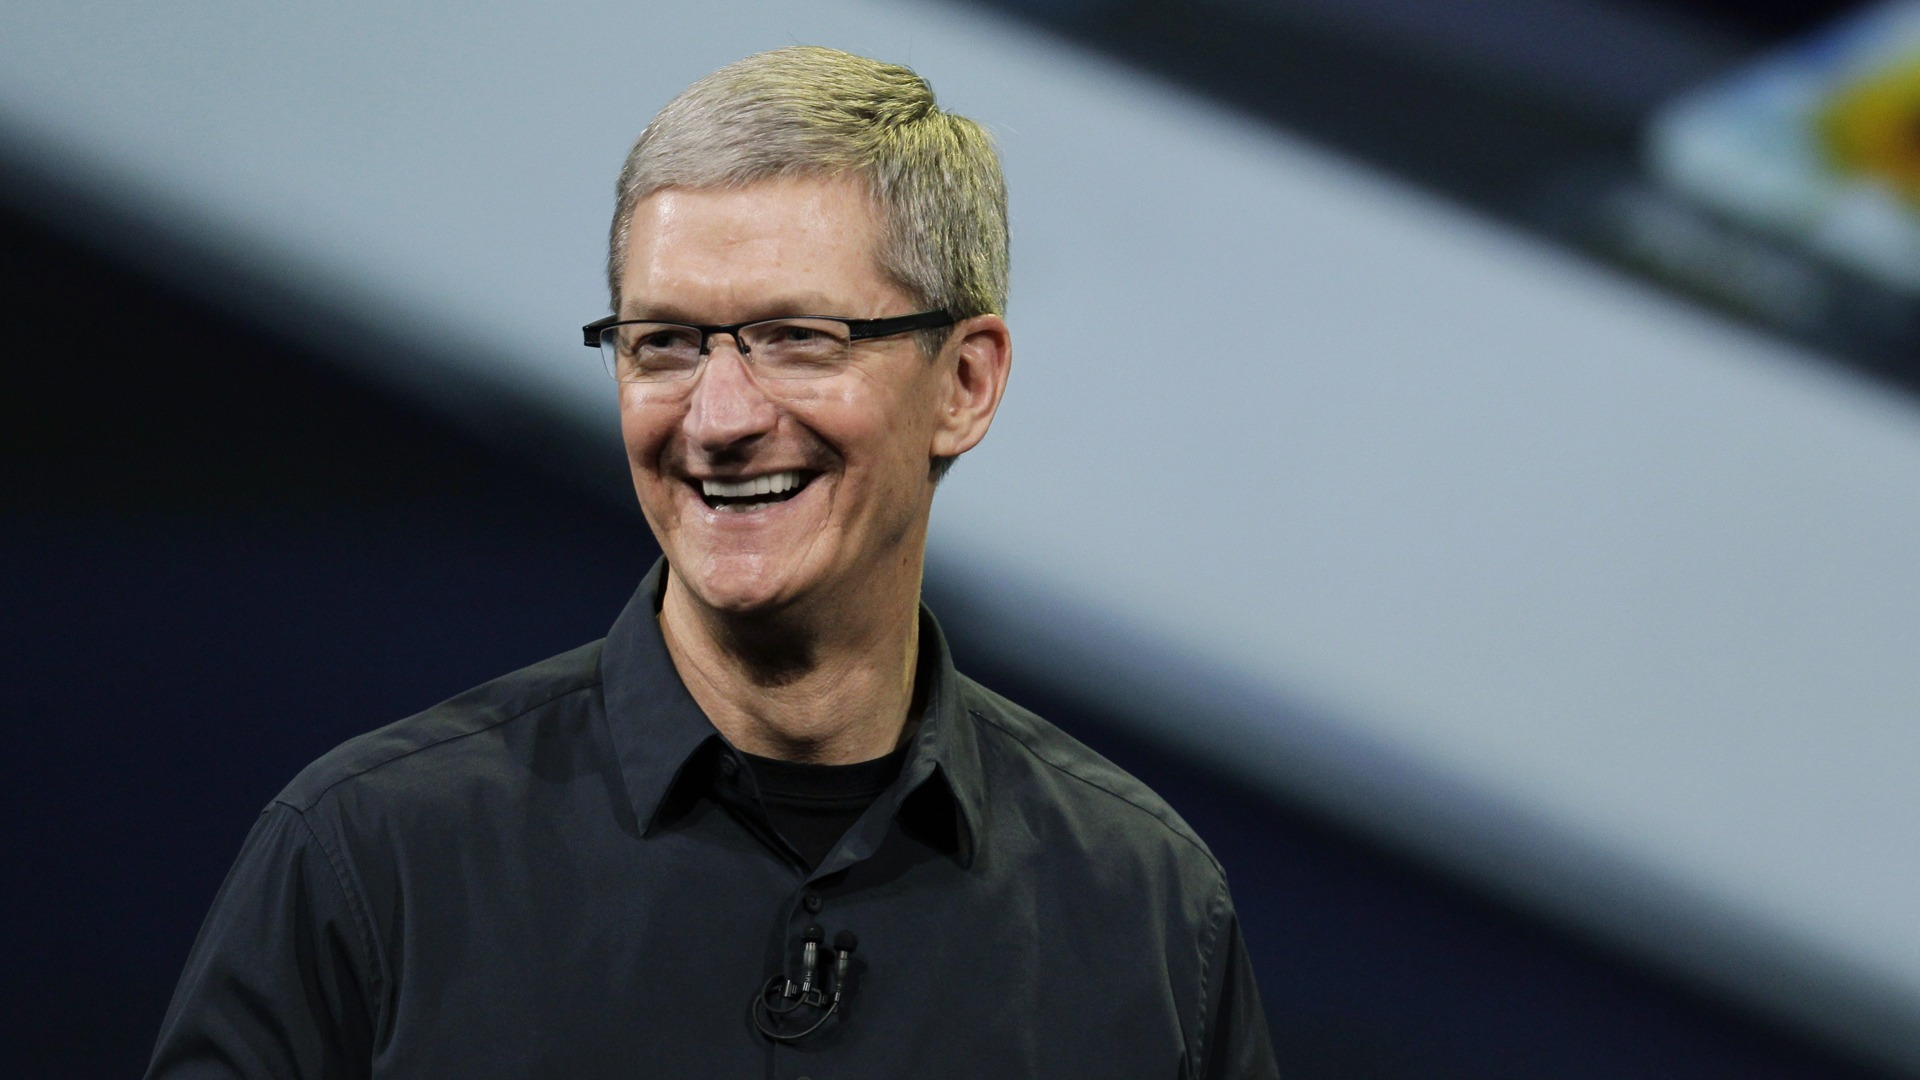 """Tim cook about virtual reality: """"It's really cool"""""""